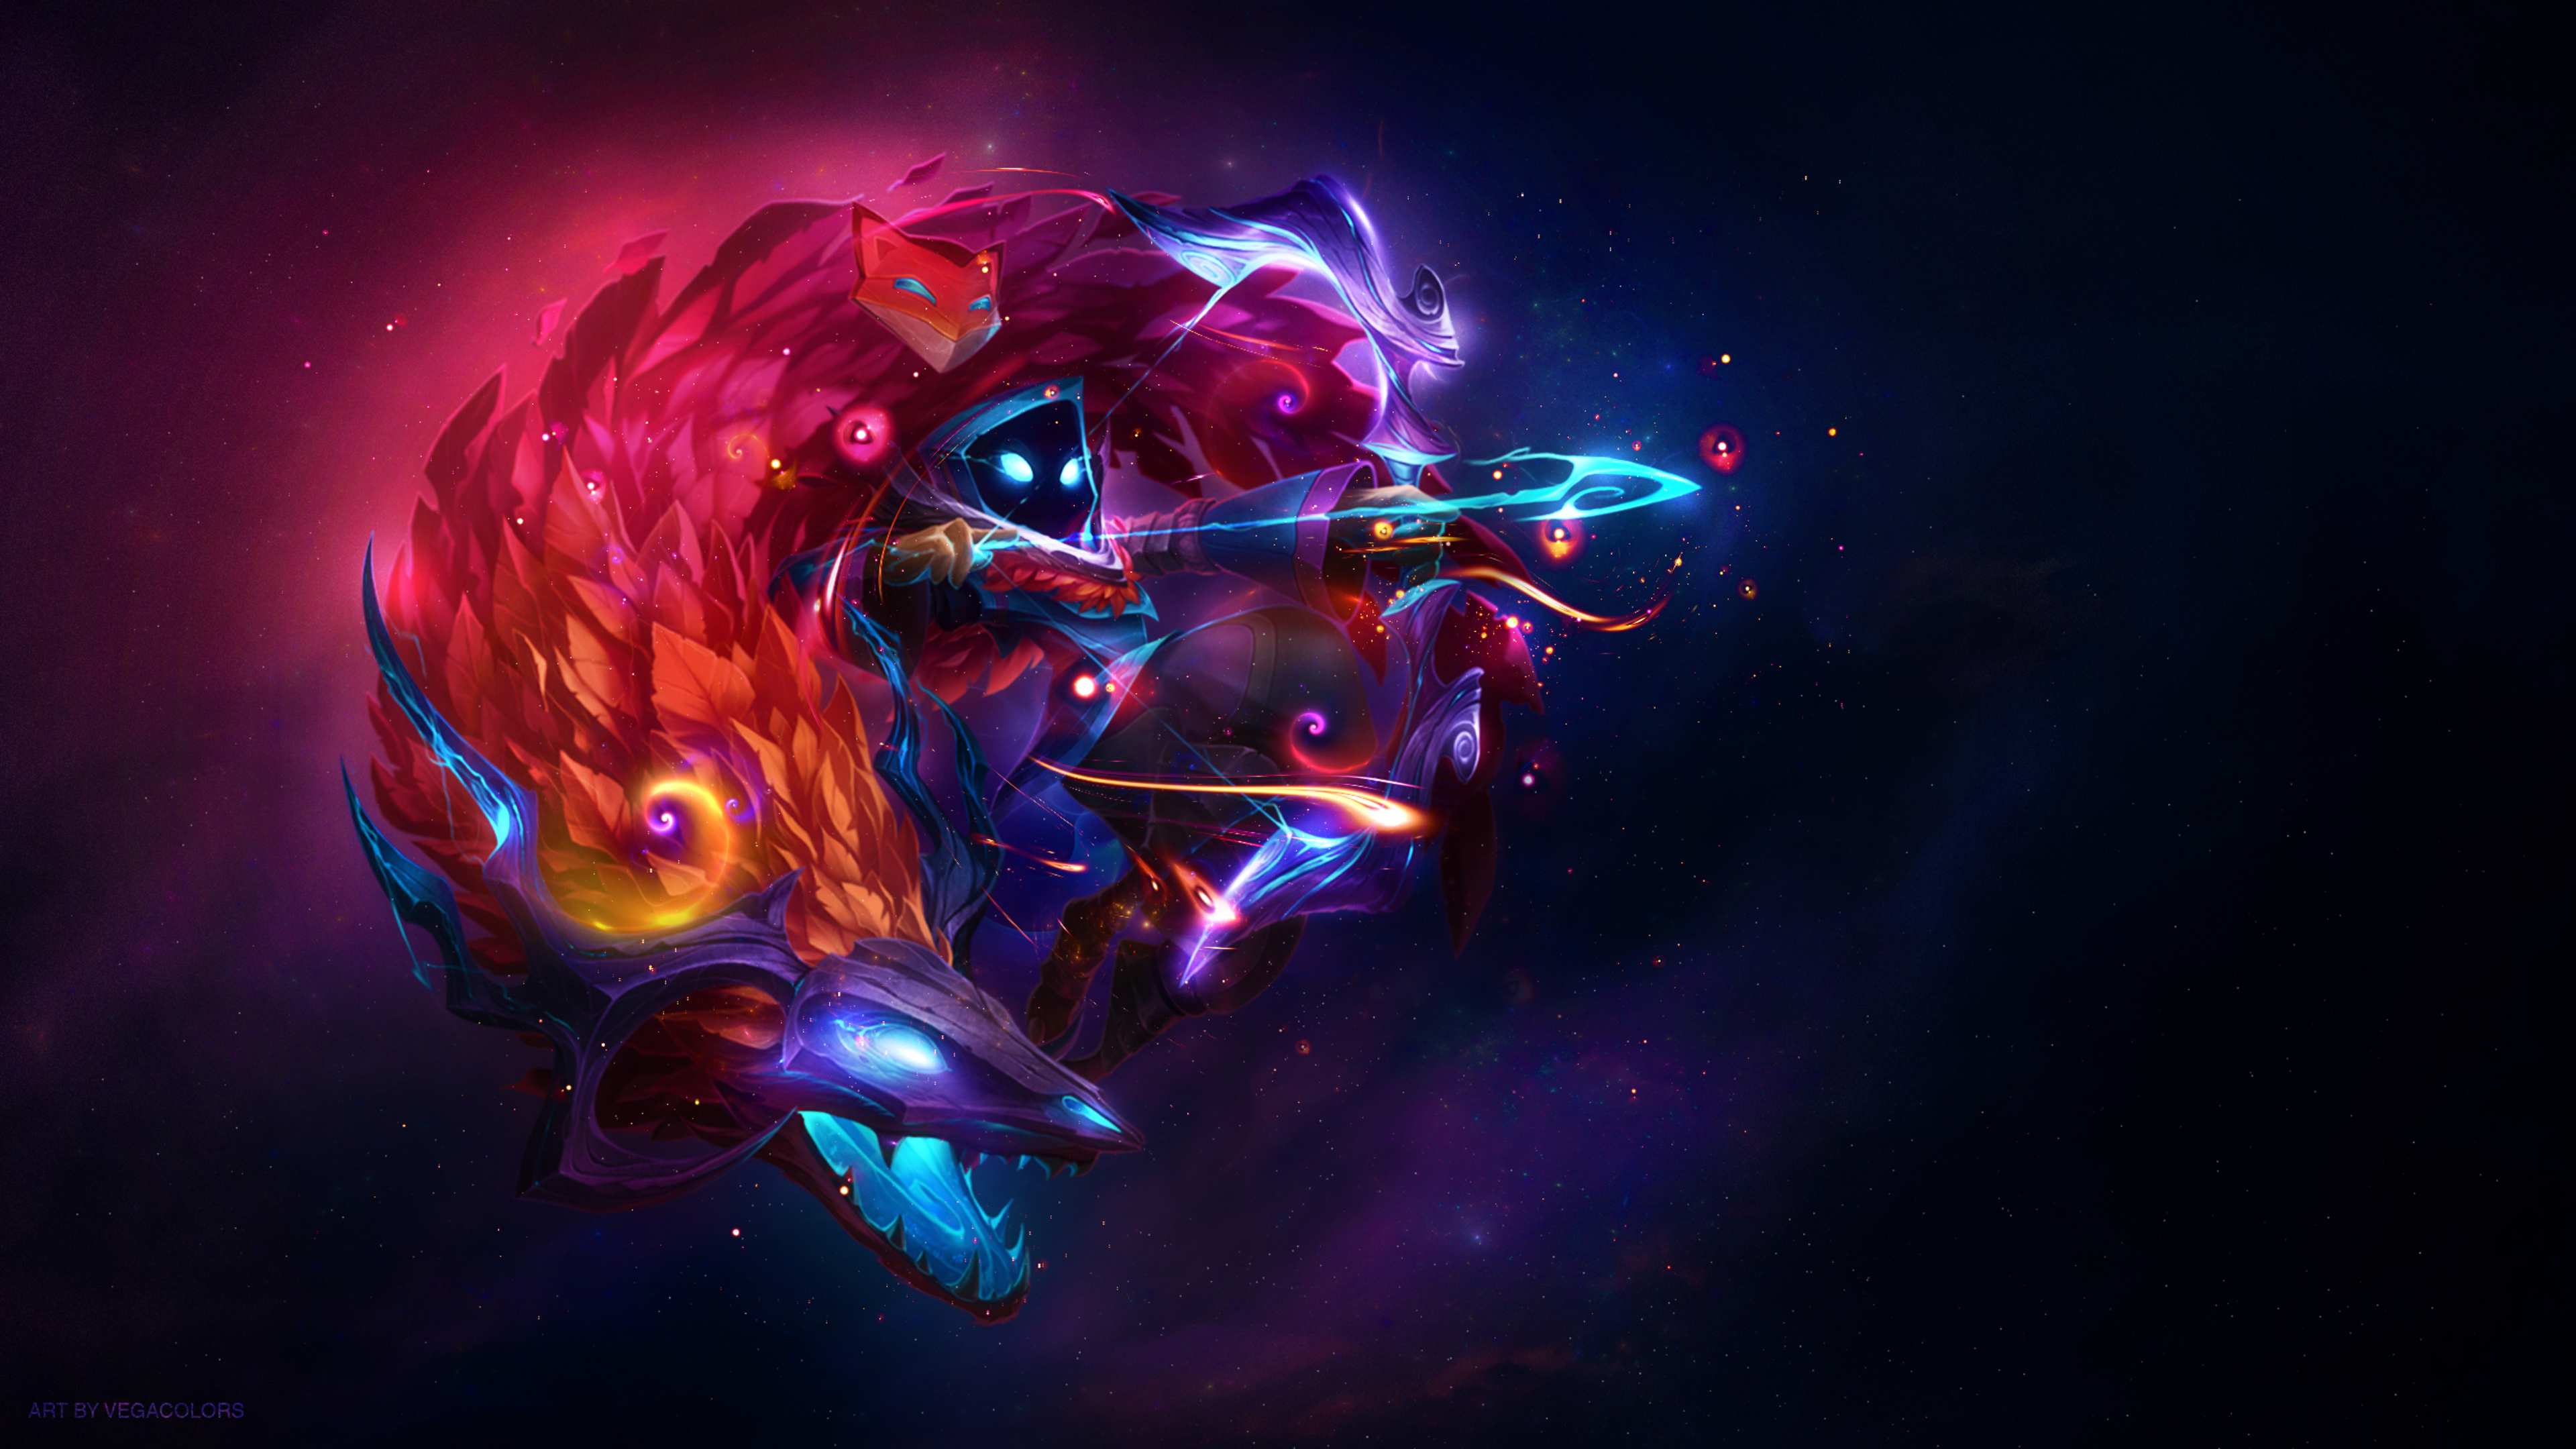 Fondos de pantalla Kindred League Of Legends